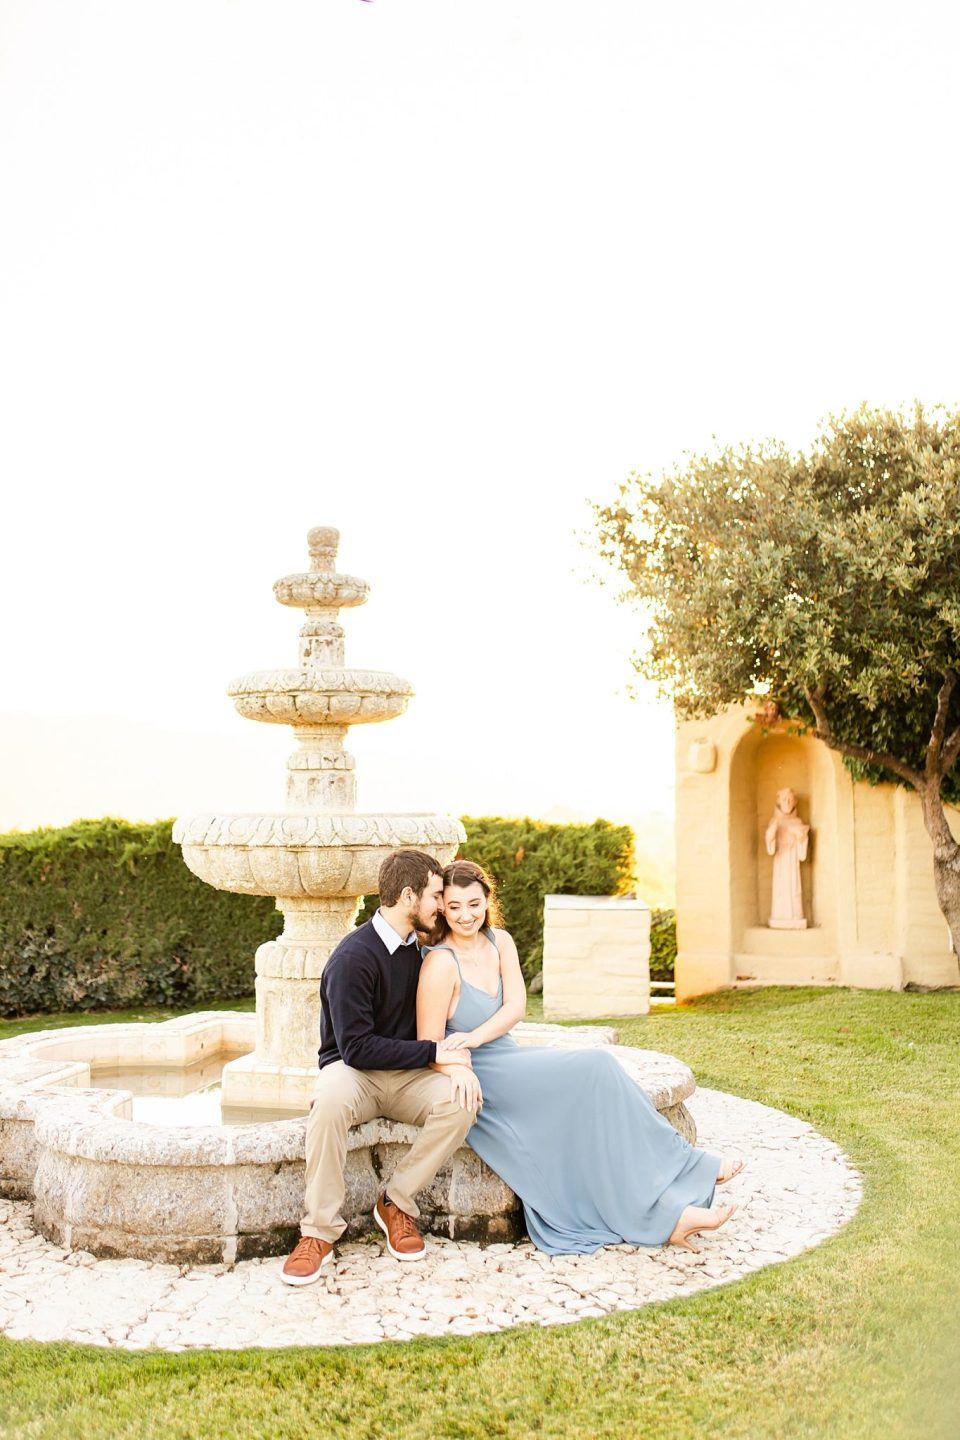 The couple sitting on the fountain. Sofia is leaning up against Joey and holding his hands.